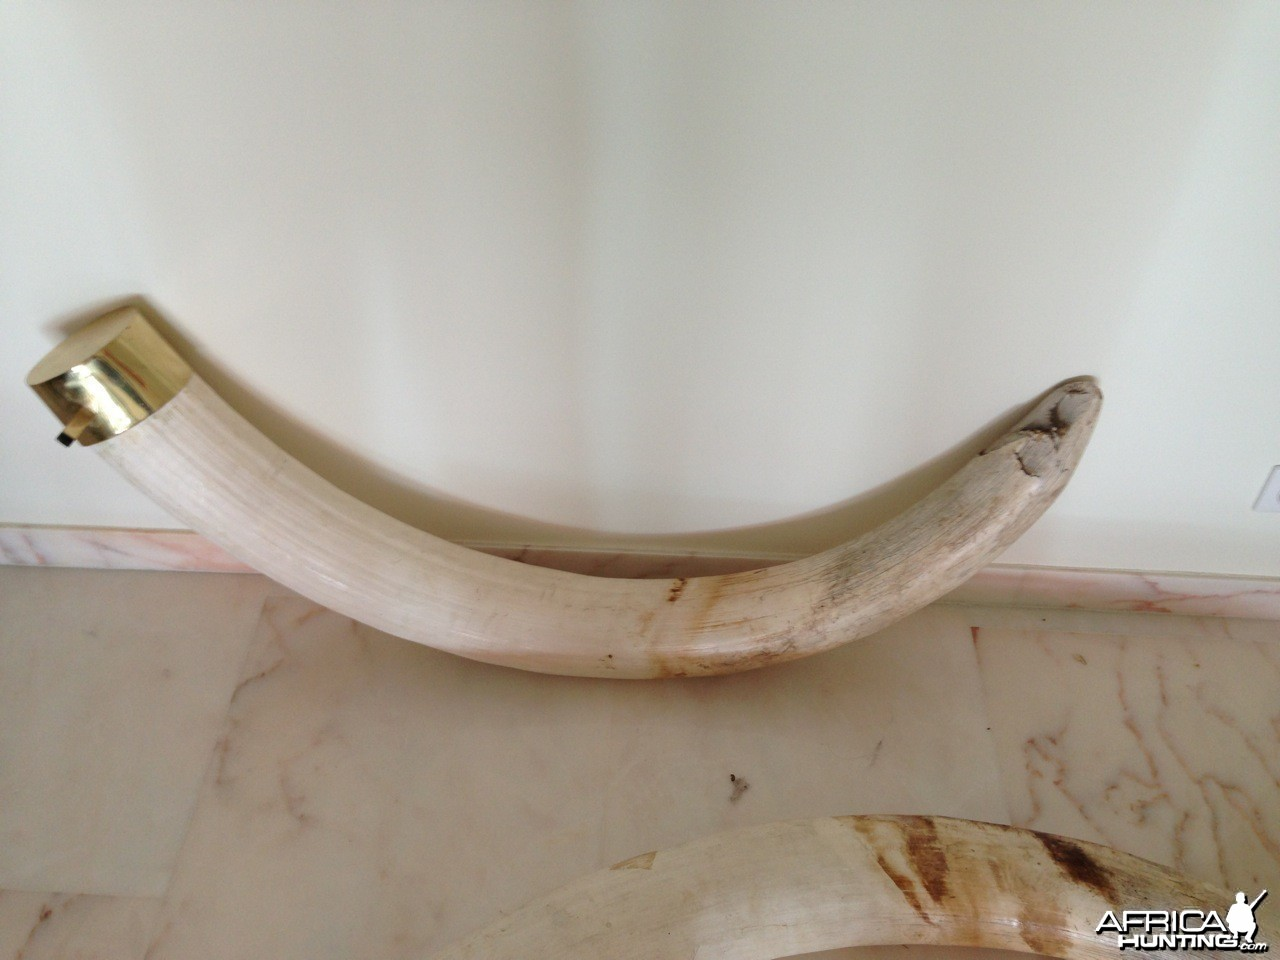 Elephant tusk from Namibia